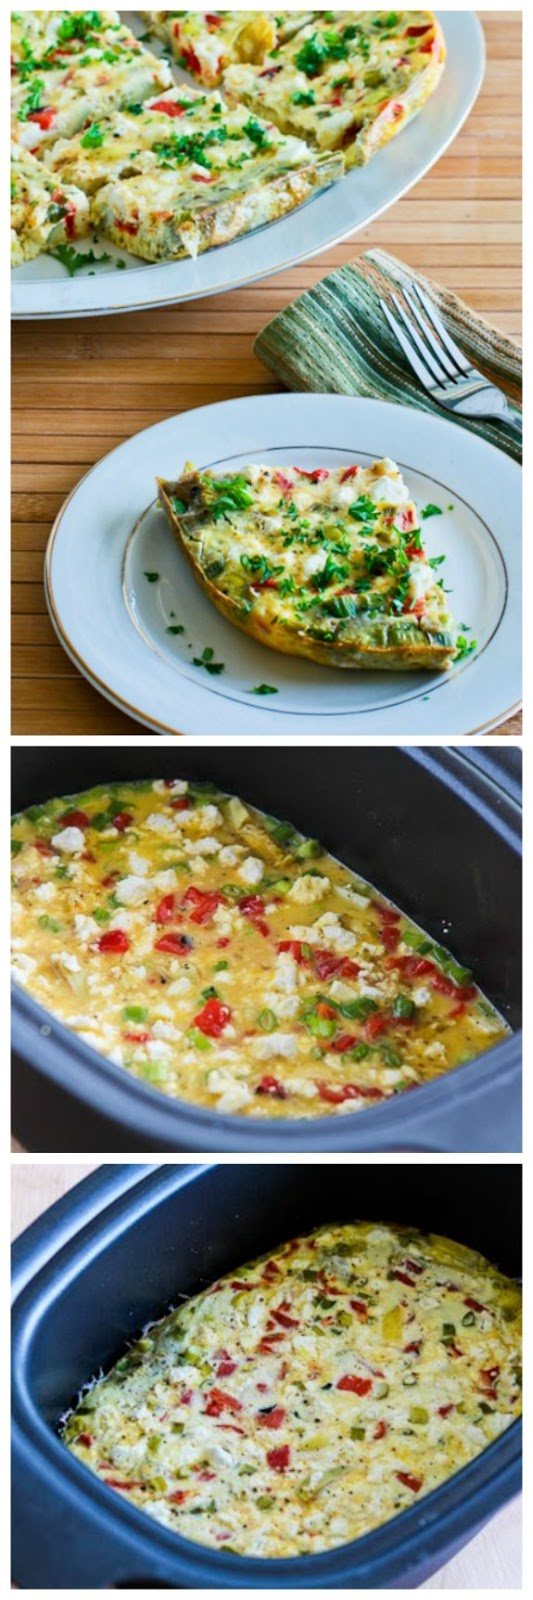 Slow Cooker Frittata with Artichoke Hearts, Roasted Peppers, and Feta from Kalyn's Kitchen featured for Casserole Crock Saturdays on SlowCookerFromScratch.comz